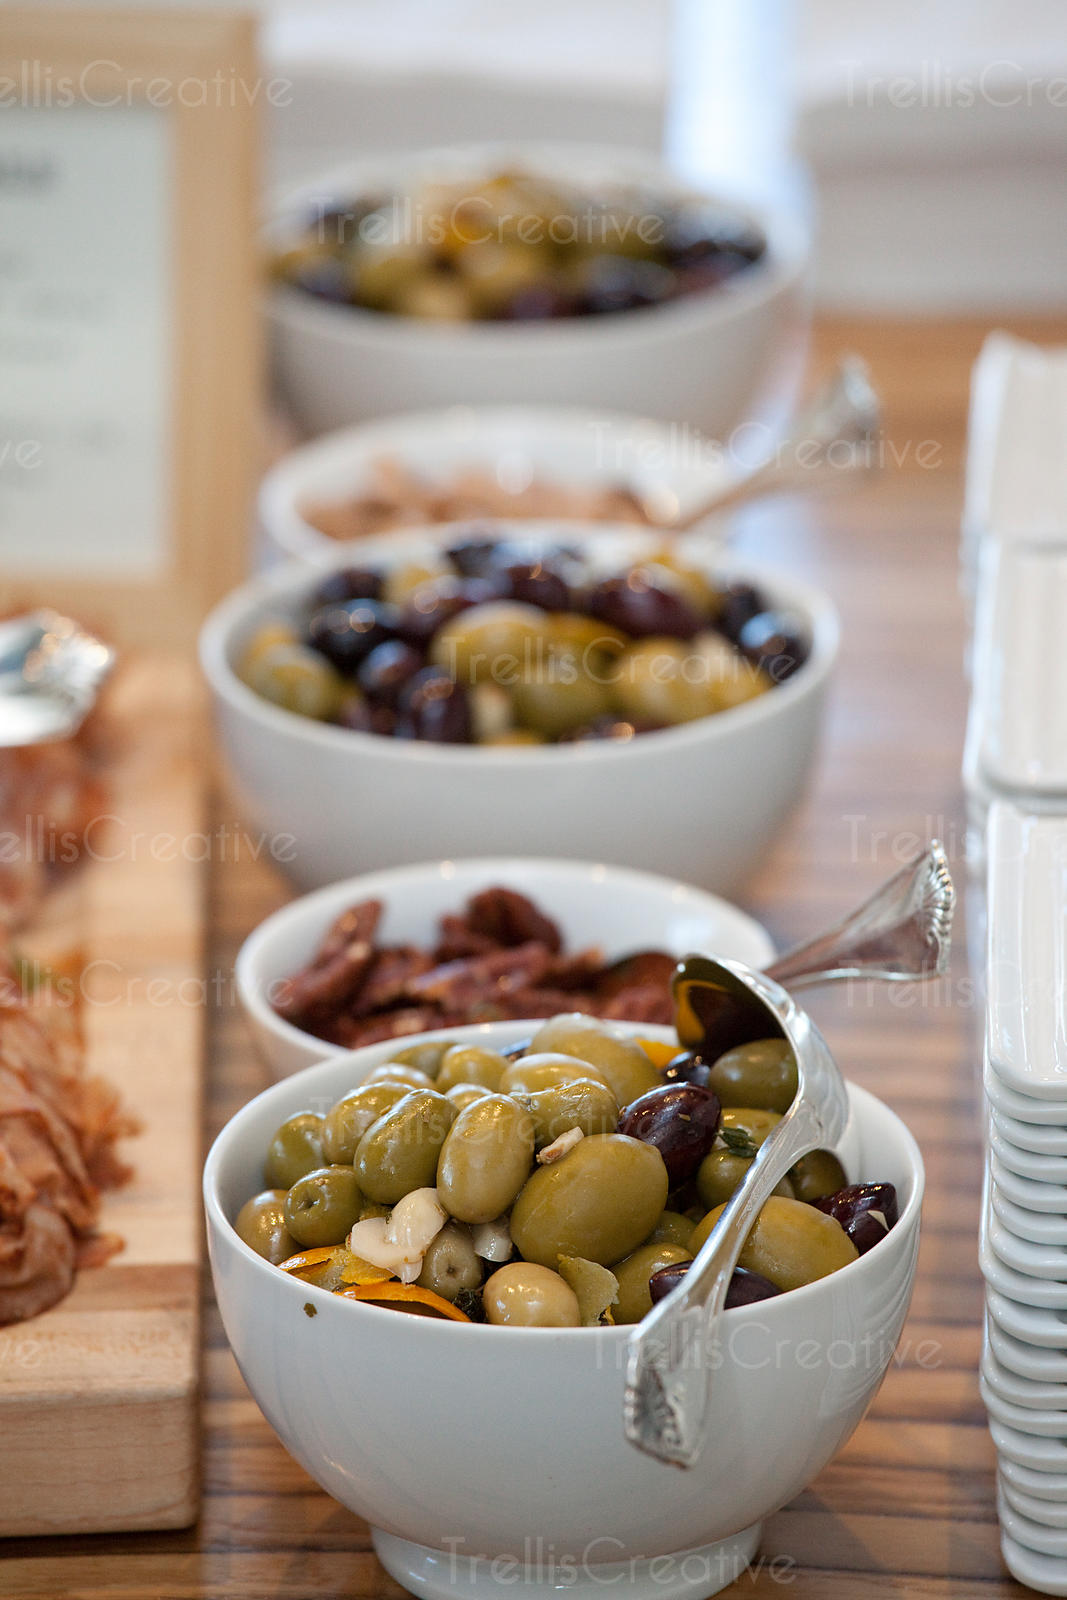 White bowls filled with various marinated olive varieties